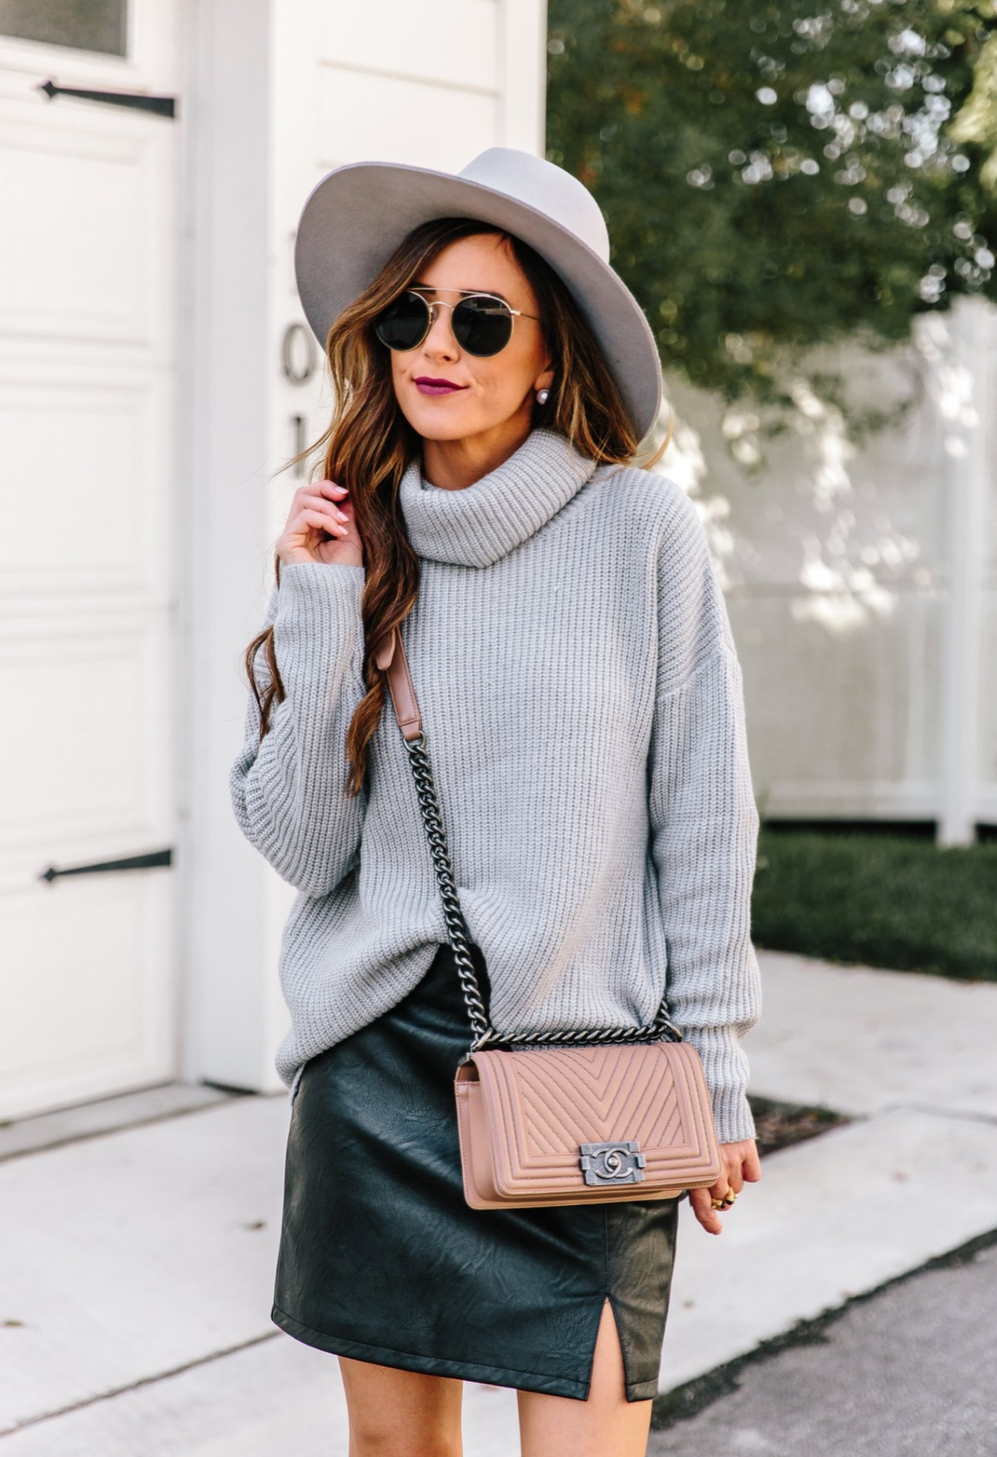 Grey sweater outfits with skirt and fedora hat